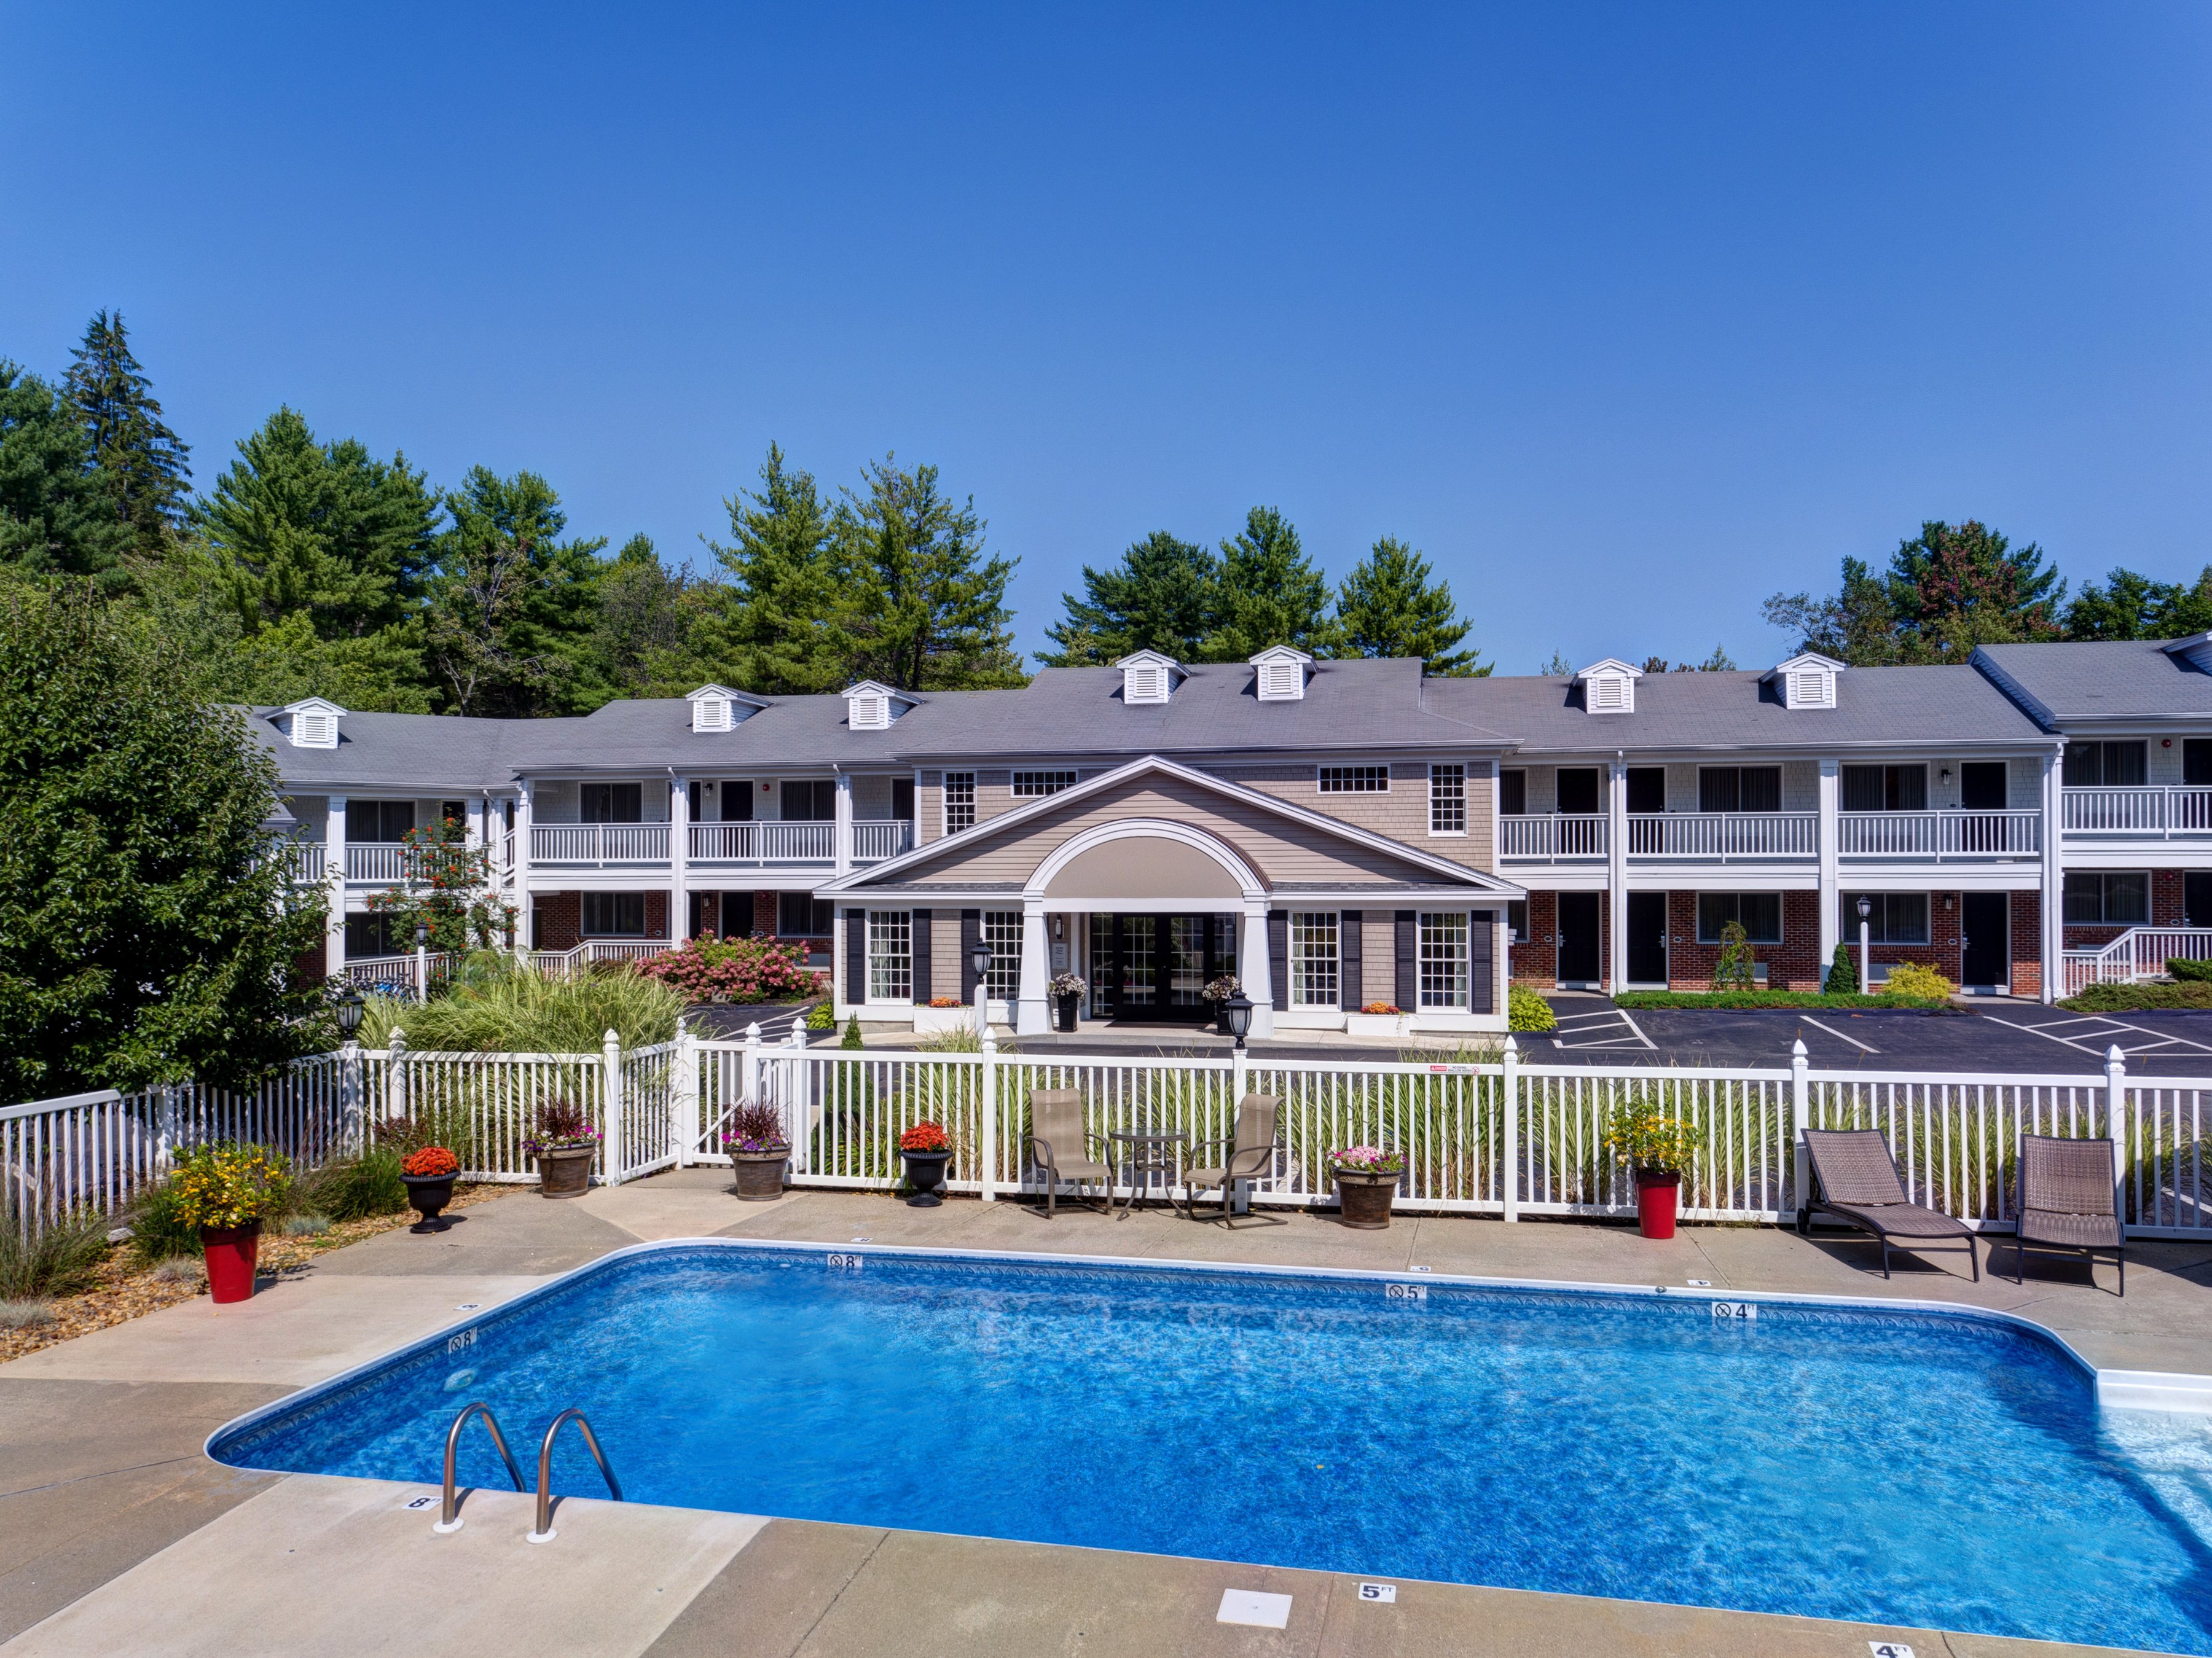 Relax by our outdoor heated pool during the summer months.